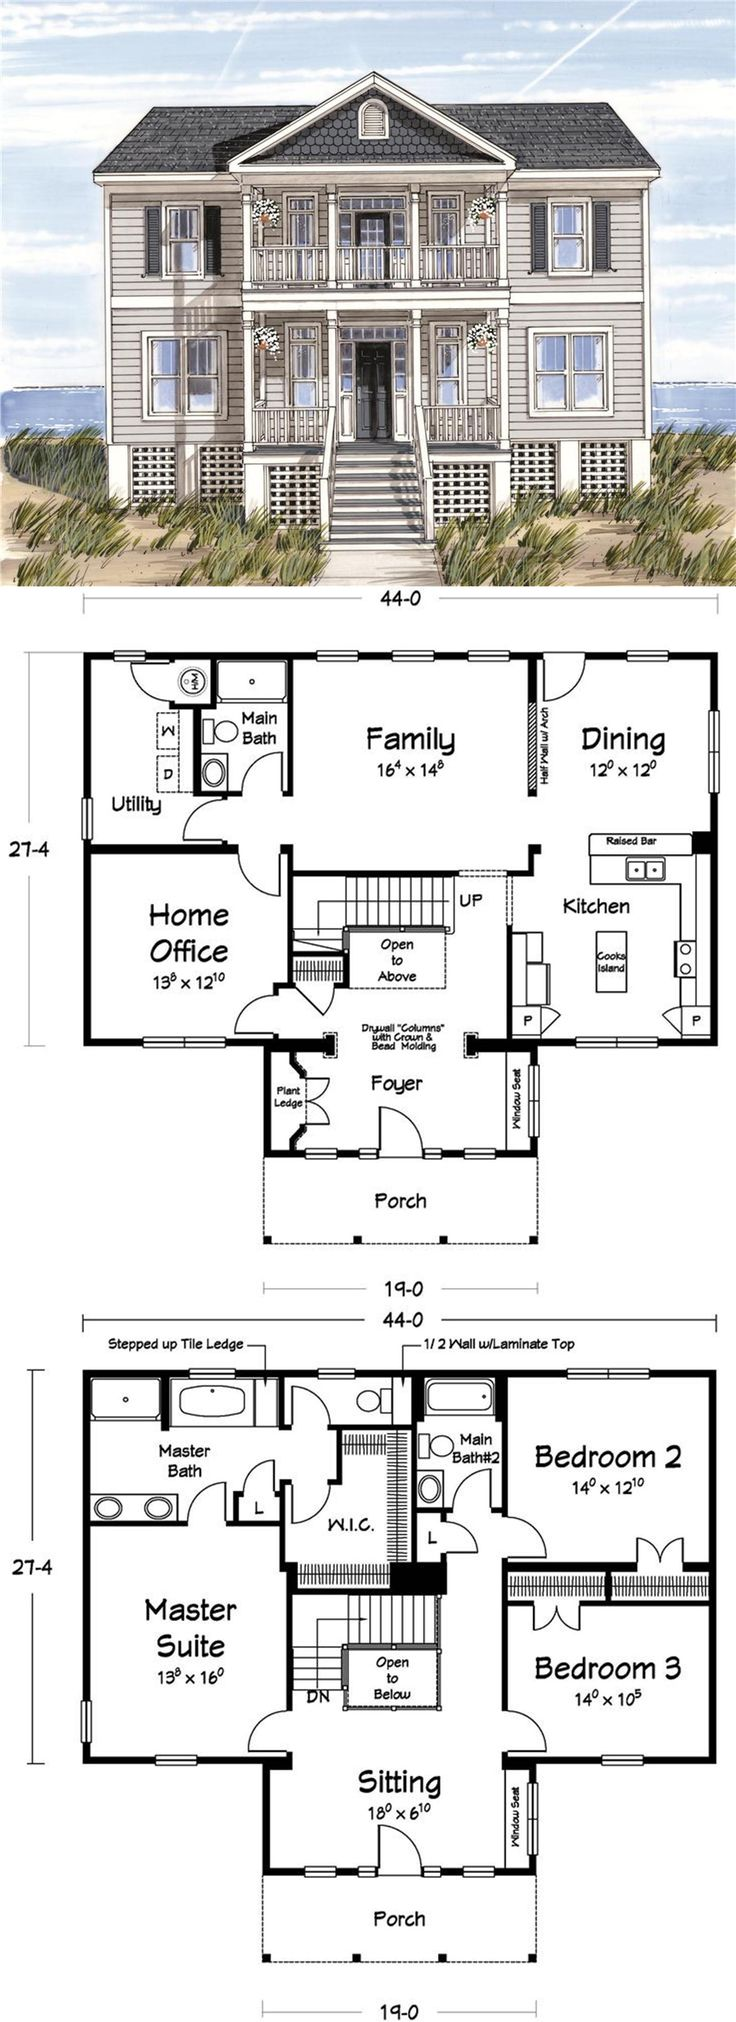 Architecture Houses Blueprints best 25+ house blueprints ideas on pinterest | house floor plans